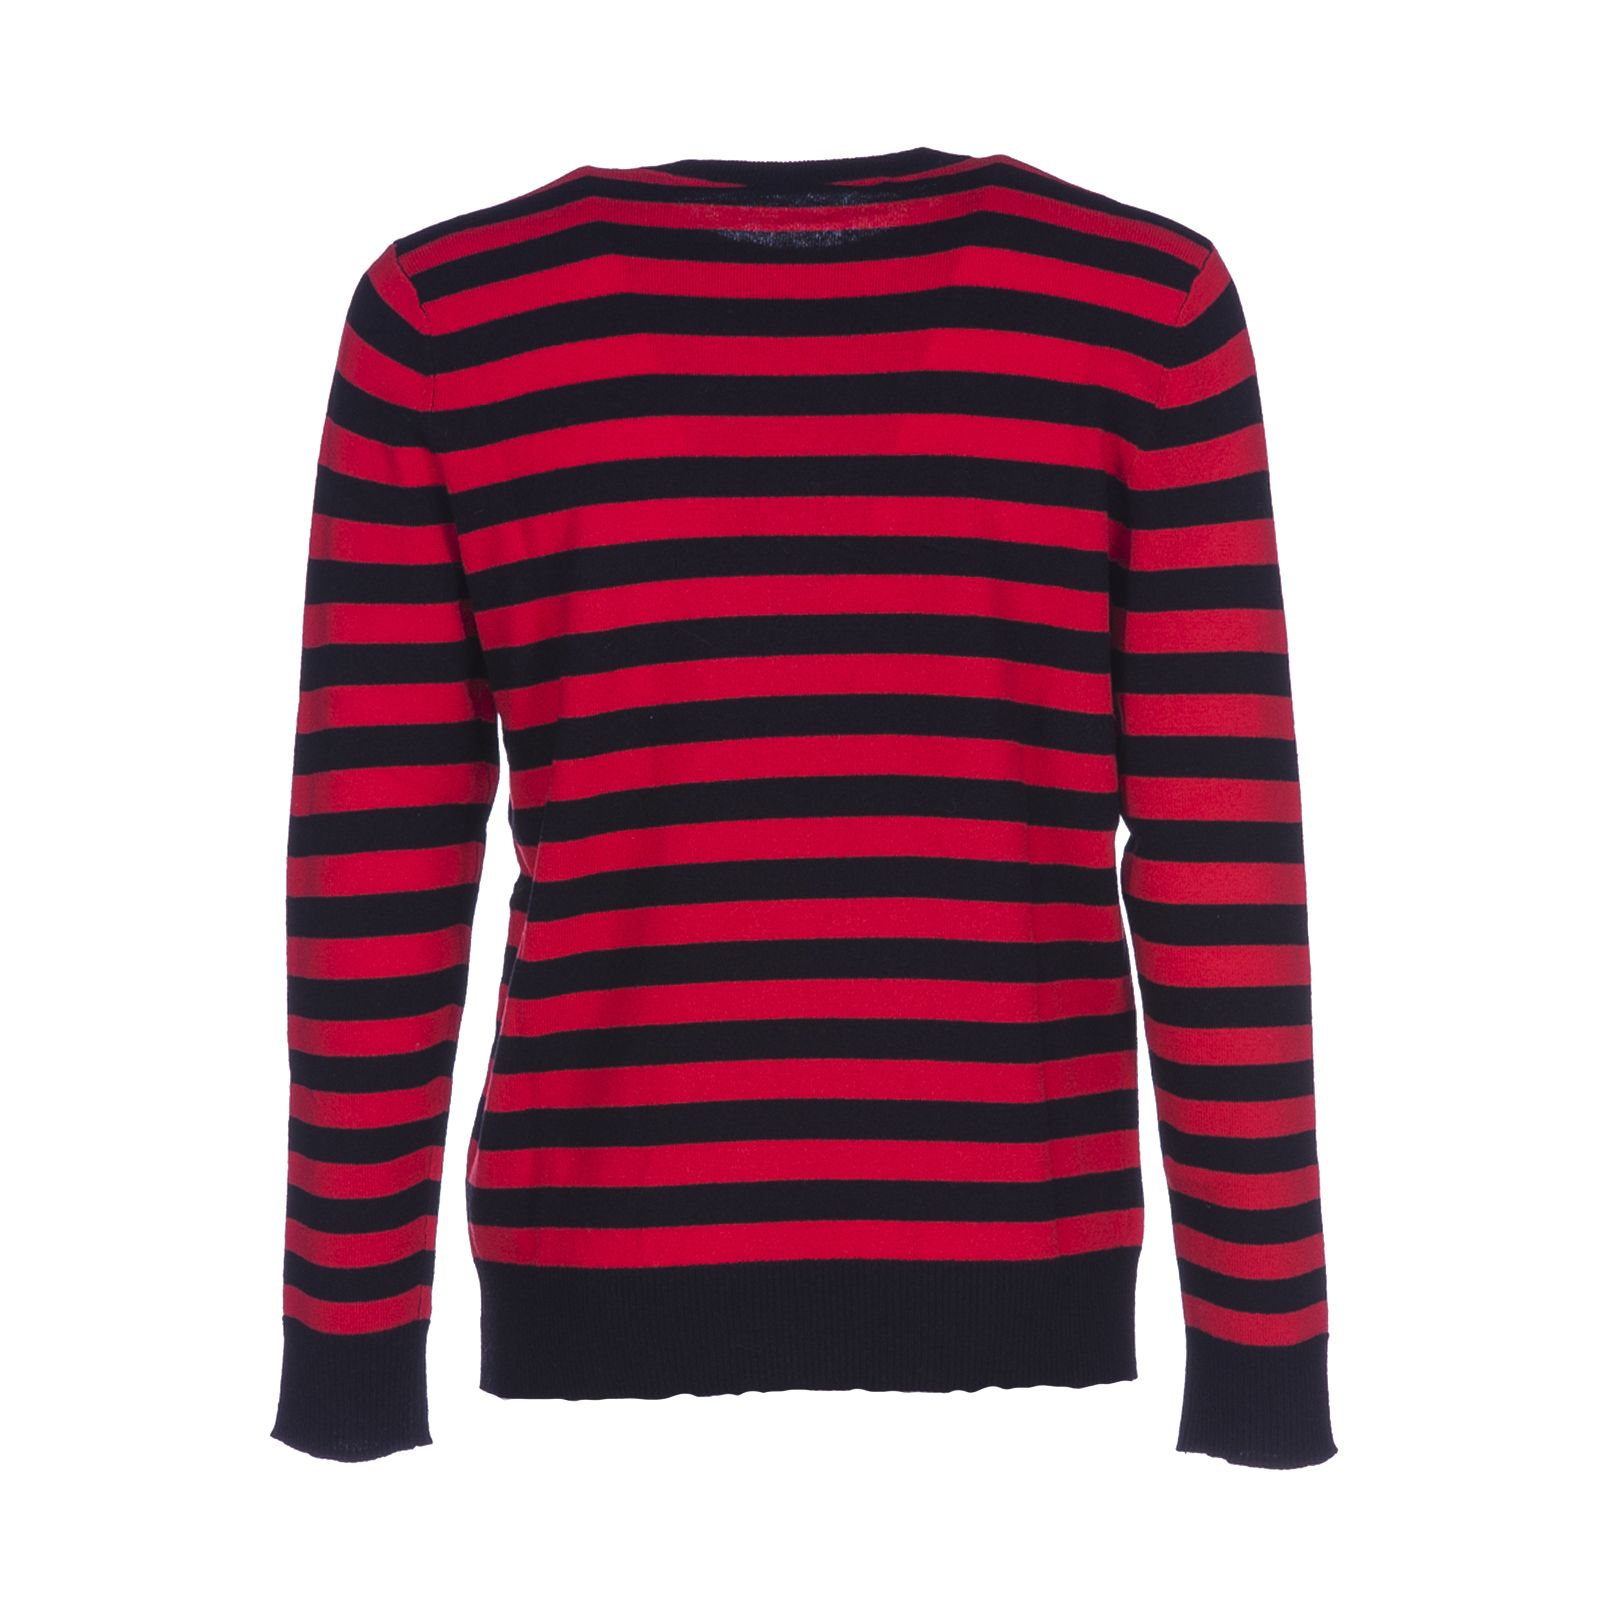 givenchy givenchy stripes pullover black red men 39 s sweaters italist. Black Bedroom Furniture Sets. Home Design Ideas